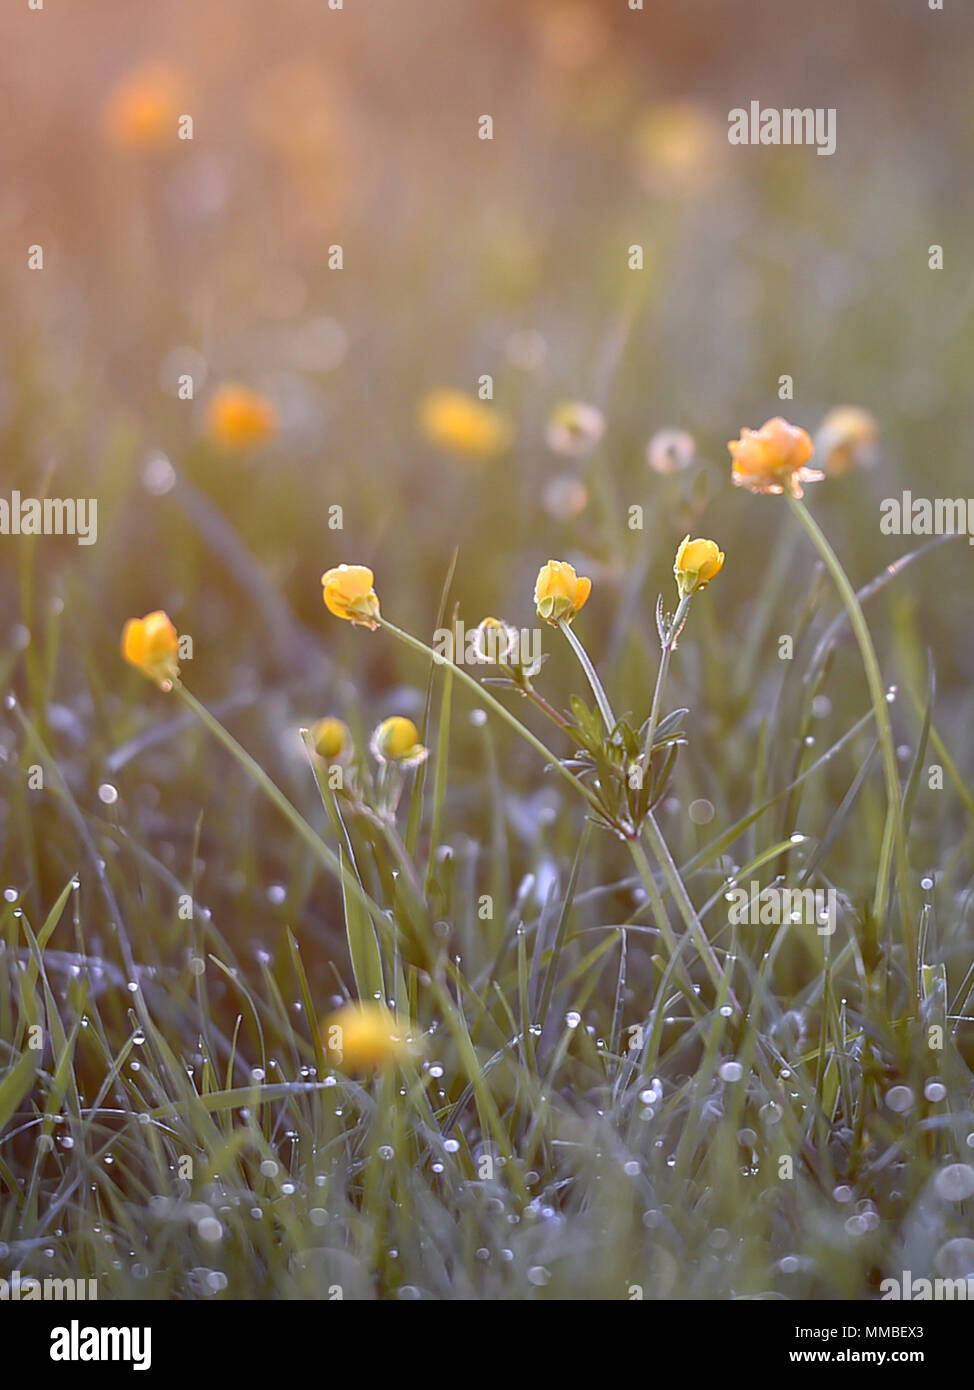 The sun rises over the Wiltshire village of Edington. Dew drops settles on the buttercups and grasses in the early morning spring sunshine. Stock Photo